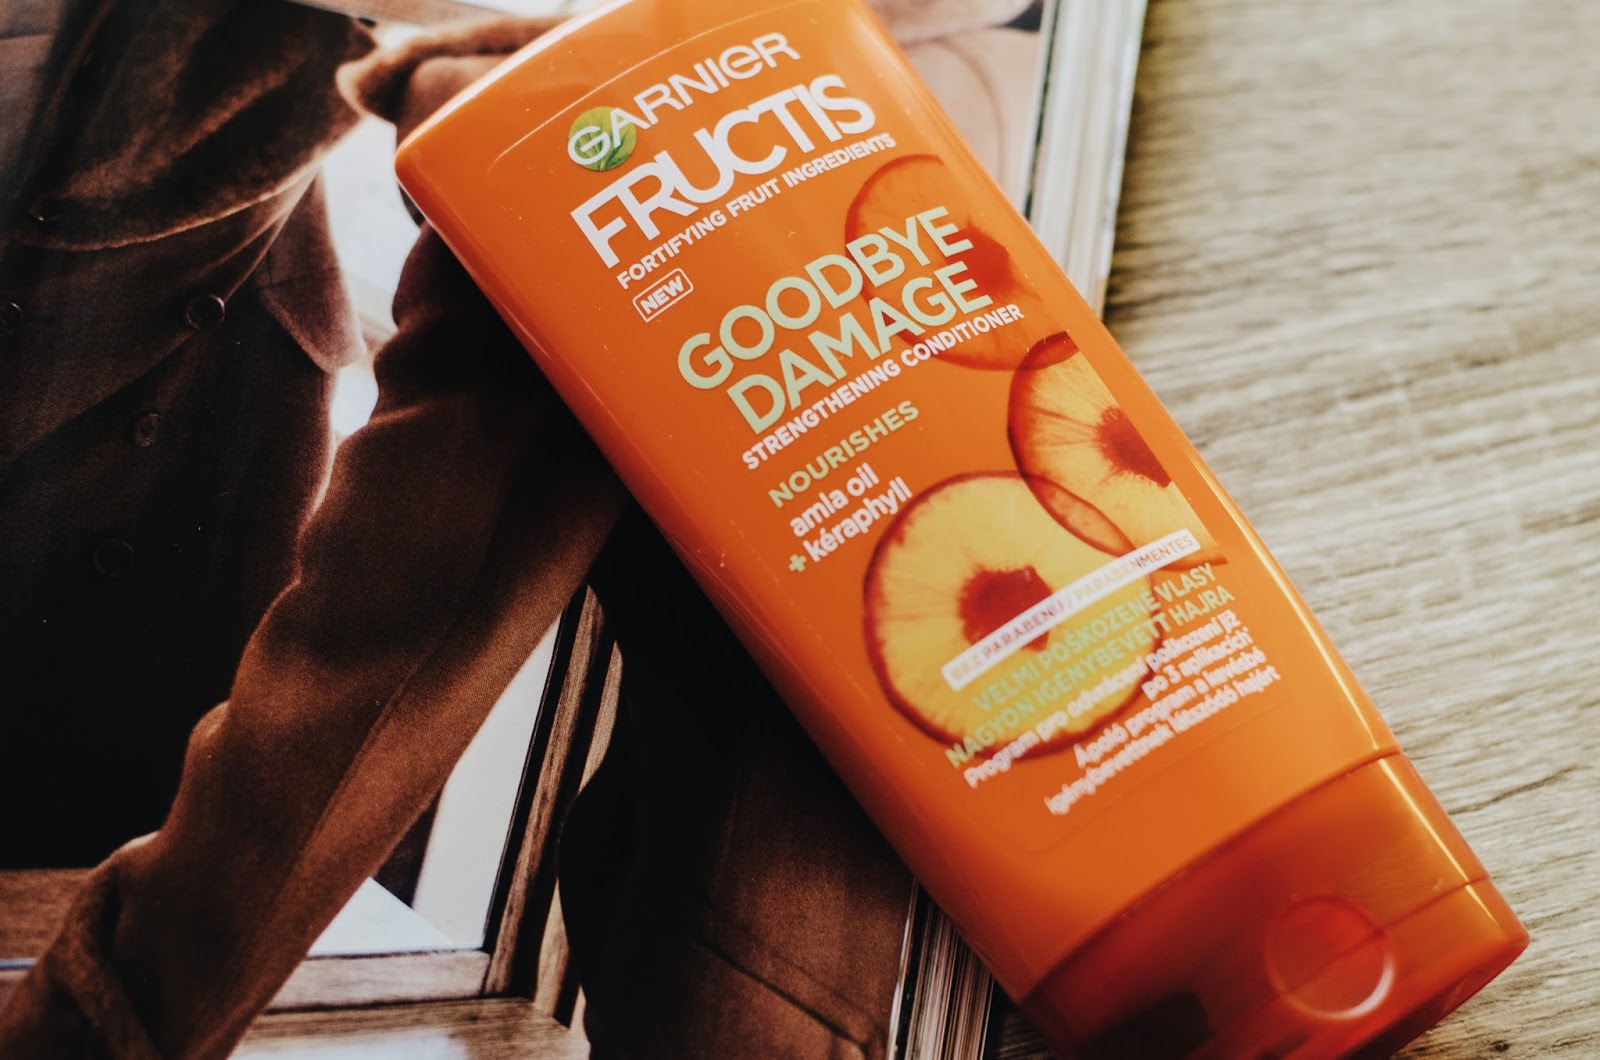 garnier_fructis_review